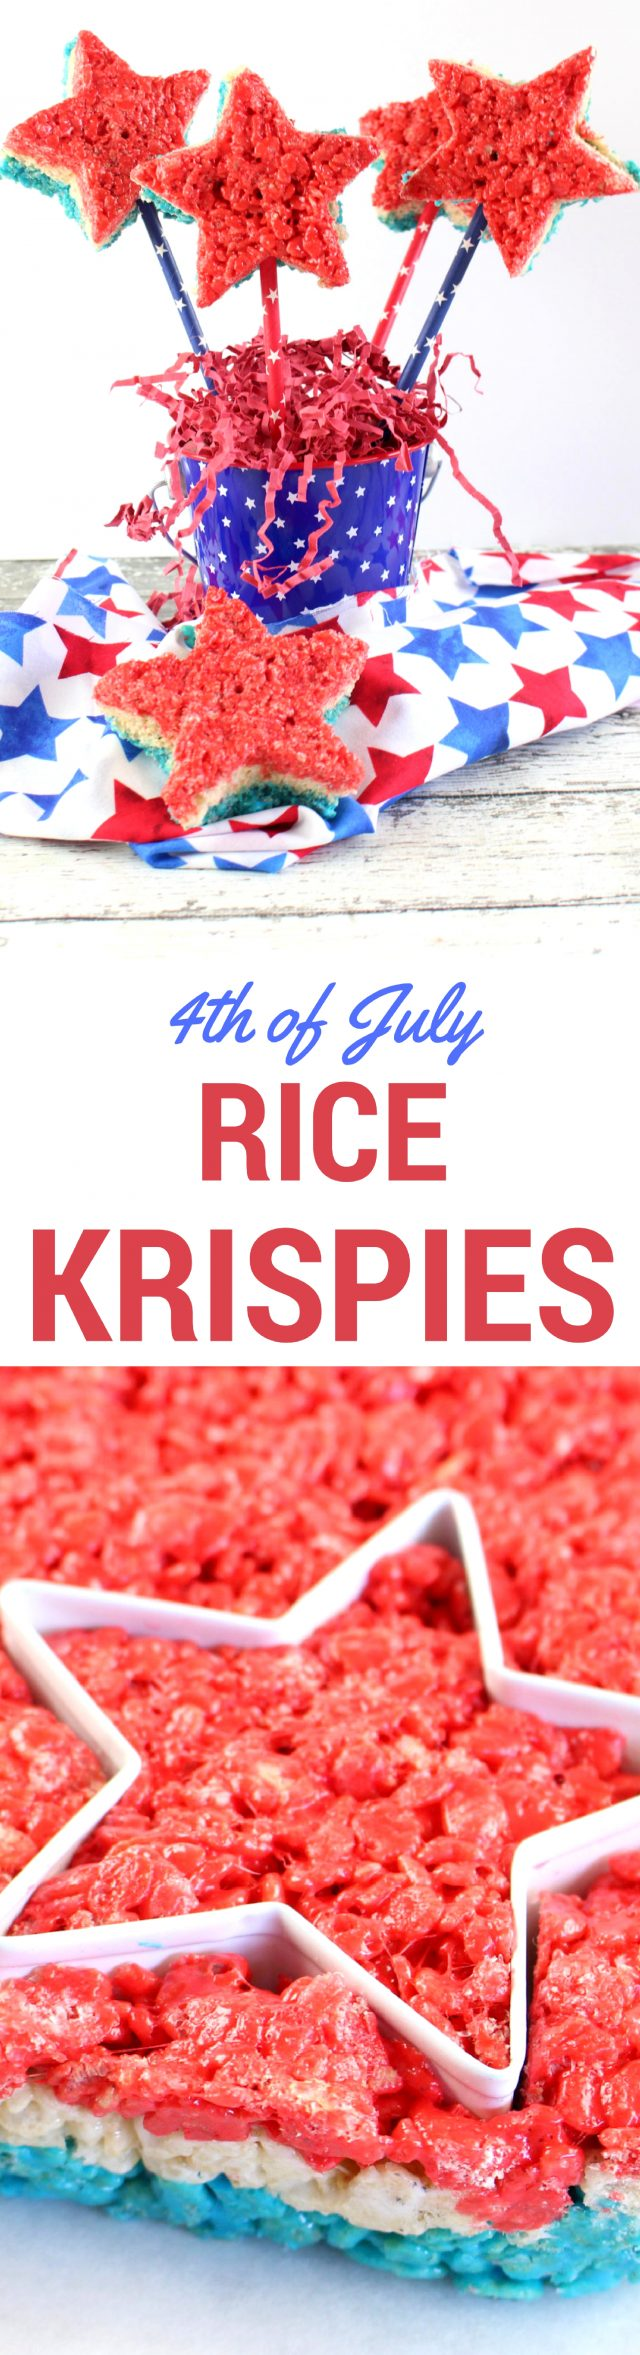 Red, White & Blue Rice Krispie Stars Recipe for July 4th  The big parade, the festive fireworks....the food. Let's get right down to it - it's mostly about the food. Today's special recipe for Independence day includes a family snack staple - Rice Krispie Treats - in red, white and blue layers, then cut out with a star cookie cutter.